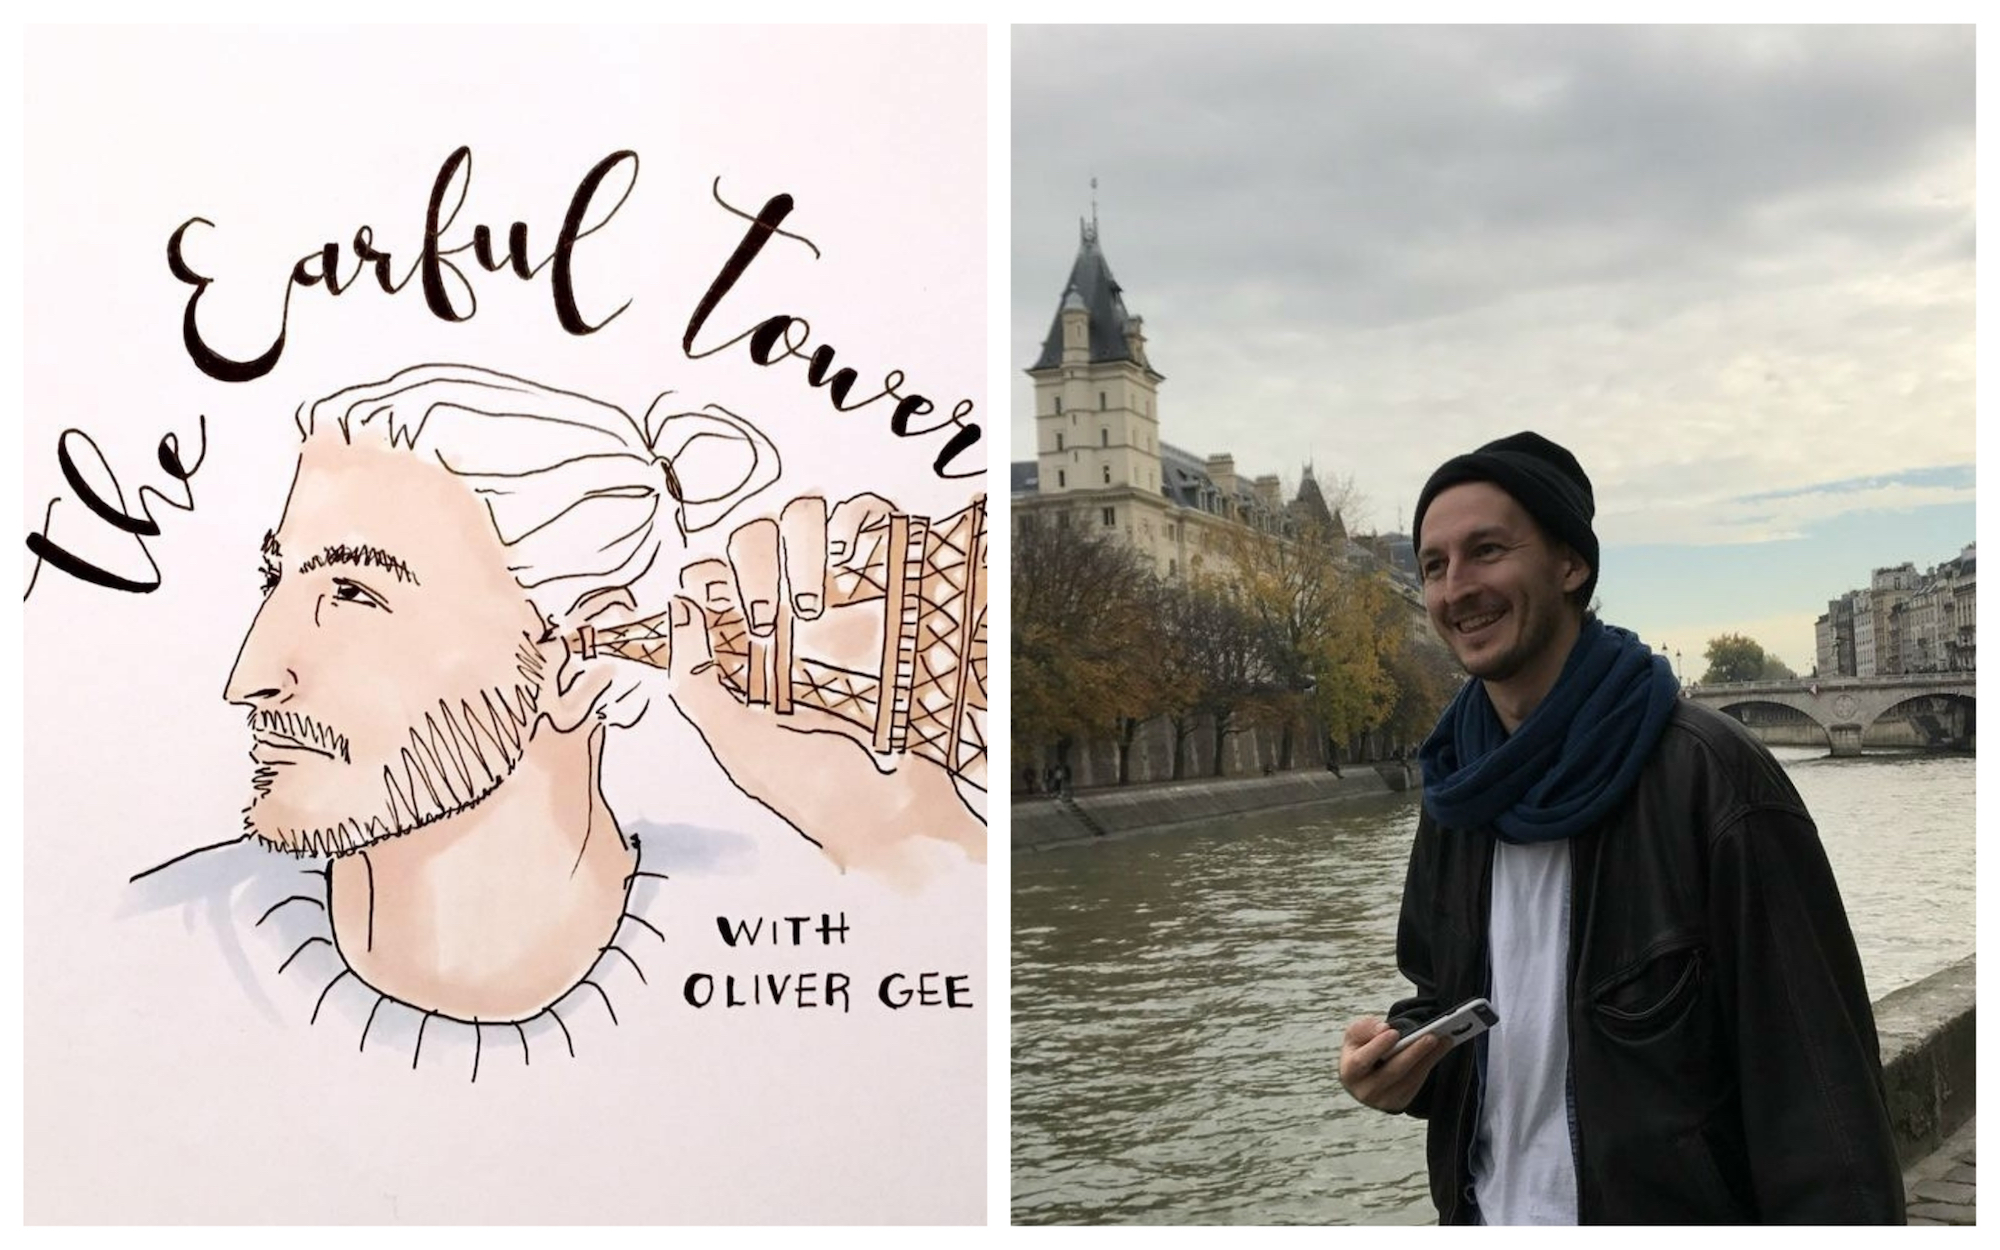 An illustration for the Earful Tower podcast of host Oliver Gee listening to a mini Eiffel tower (left). Earful Tower podcast host Oliver Gee smiling on the banks of the River Seine (right).